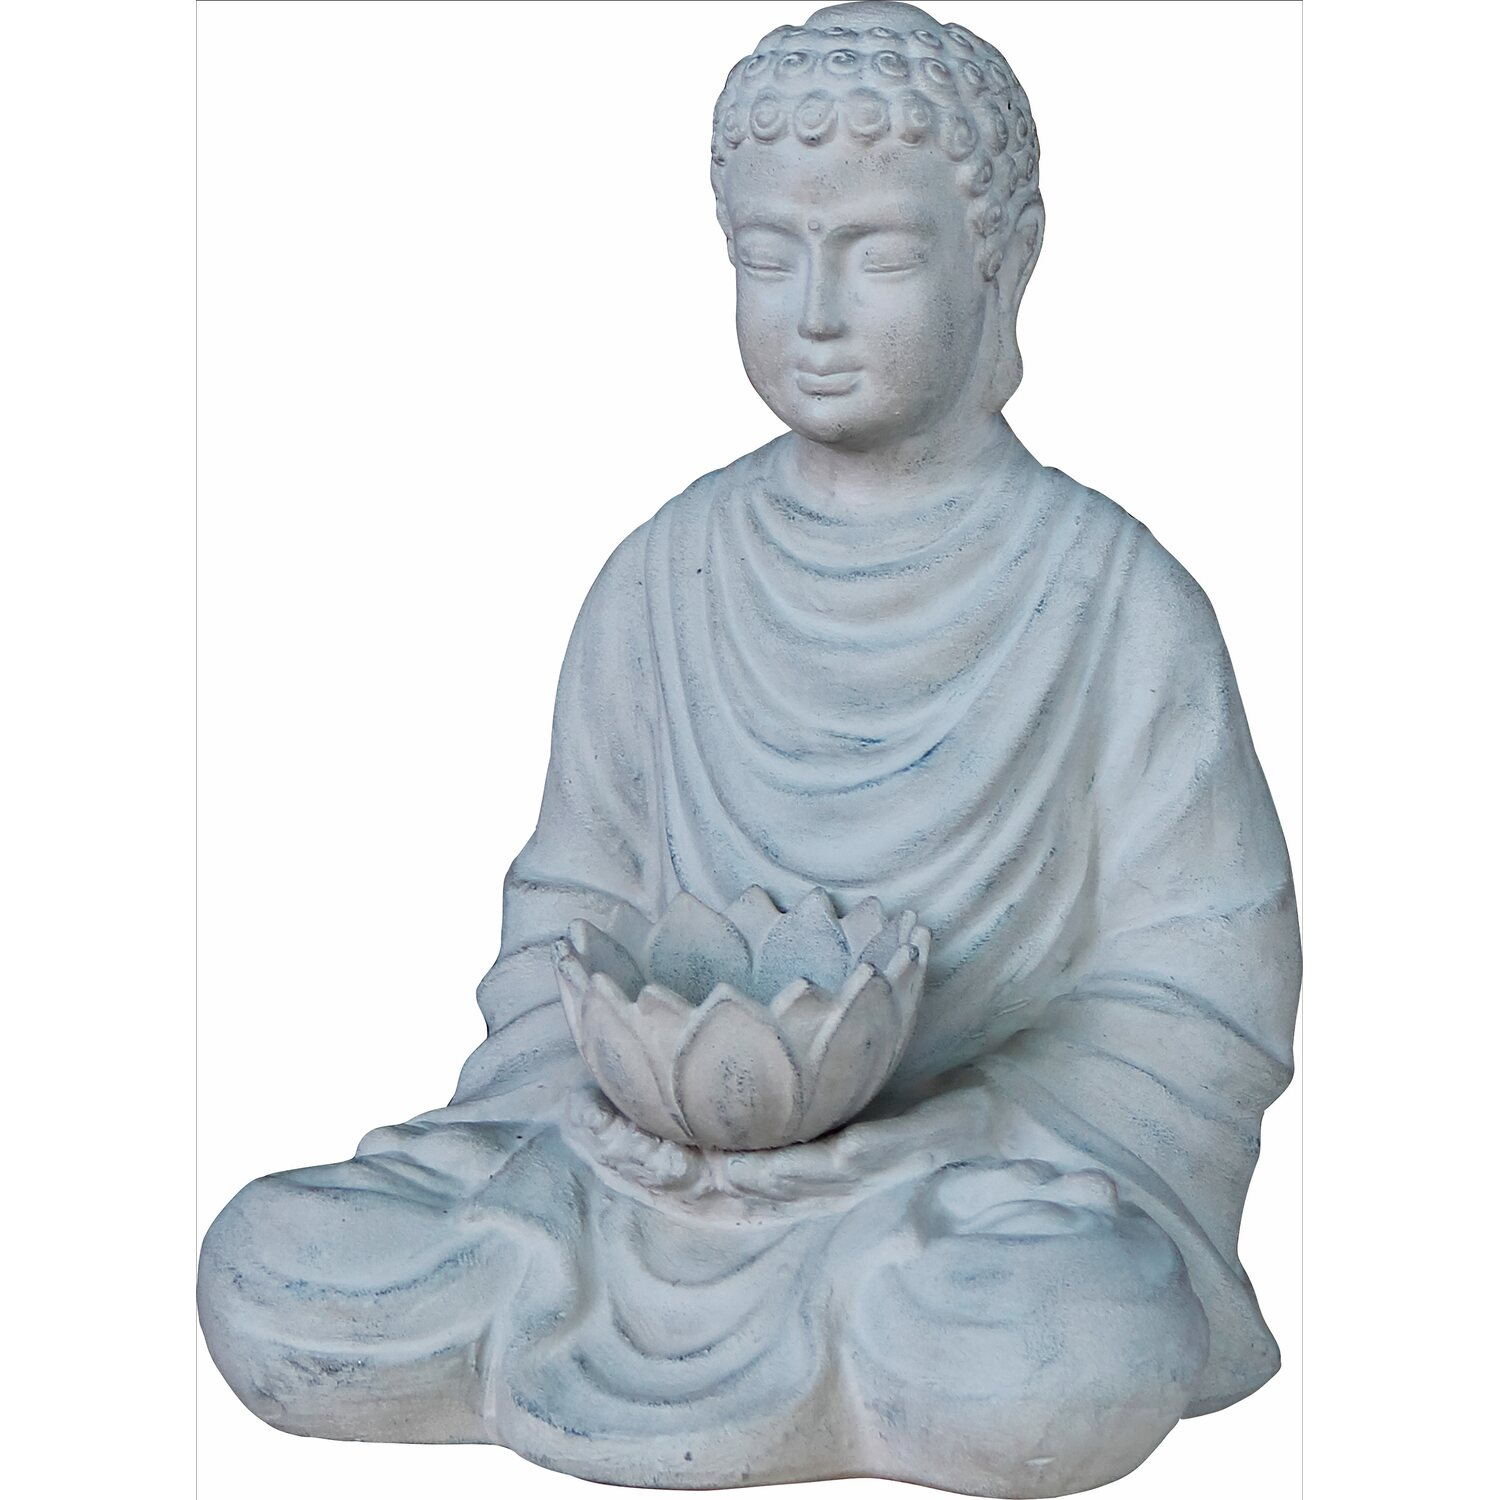 deko figur buddha mit lotusbl te 40 cm grau kaufen bei obi. Black Bedroom Furniture Sets. Home Design Ideas